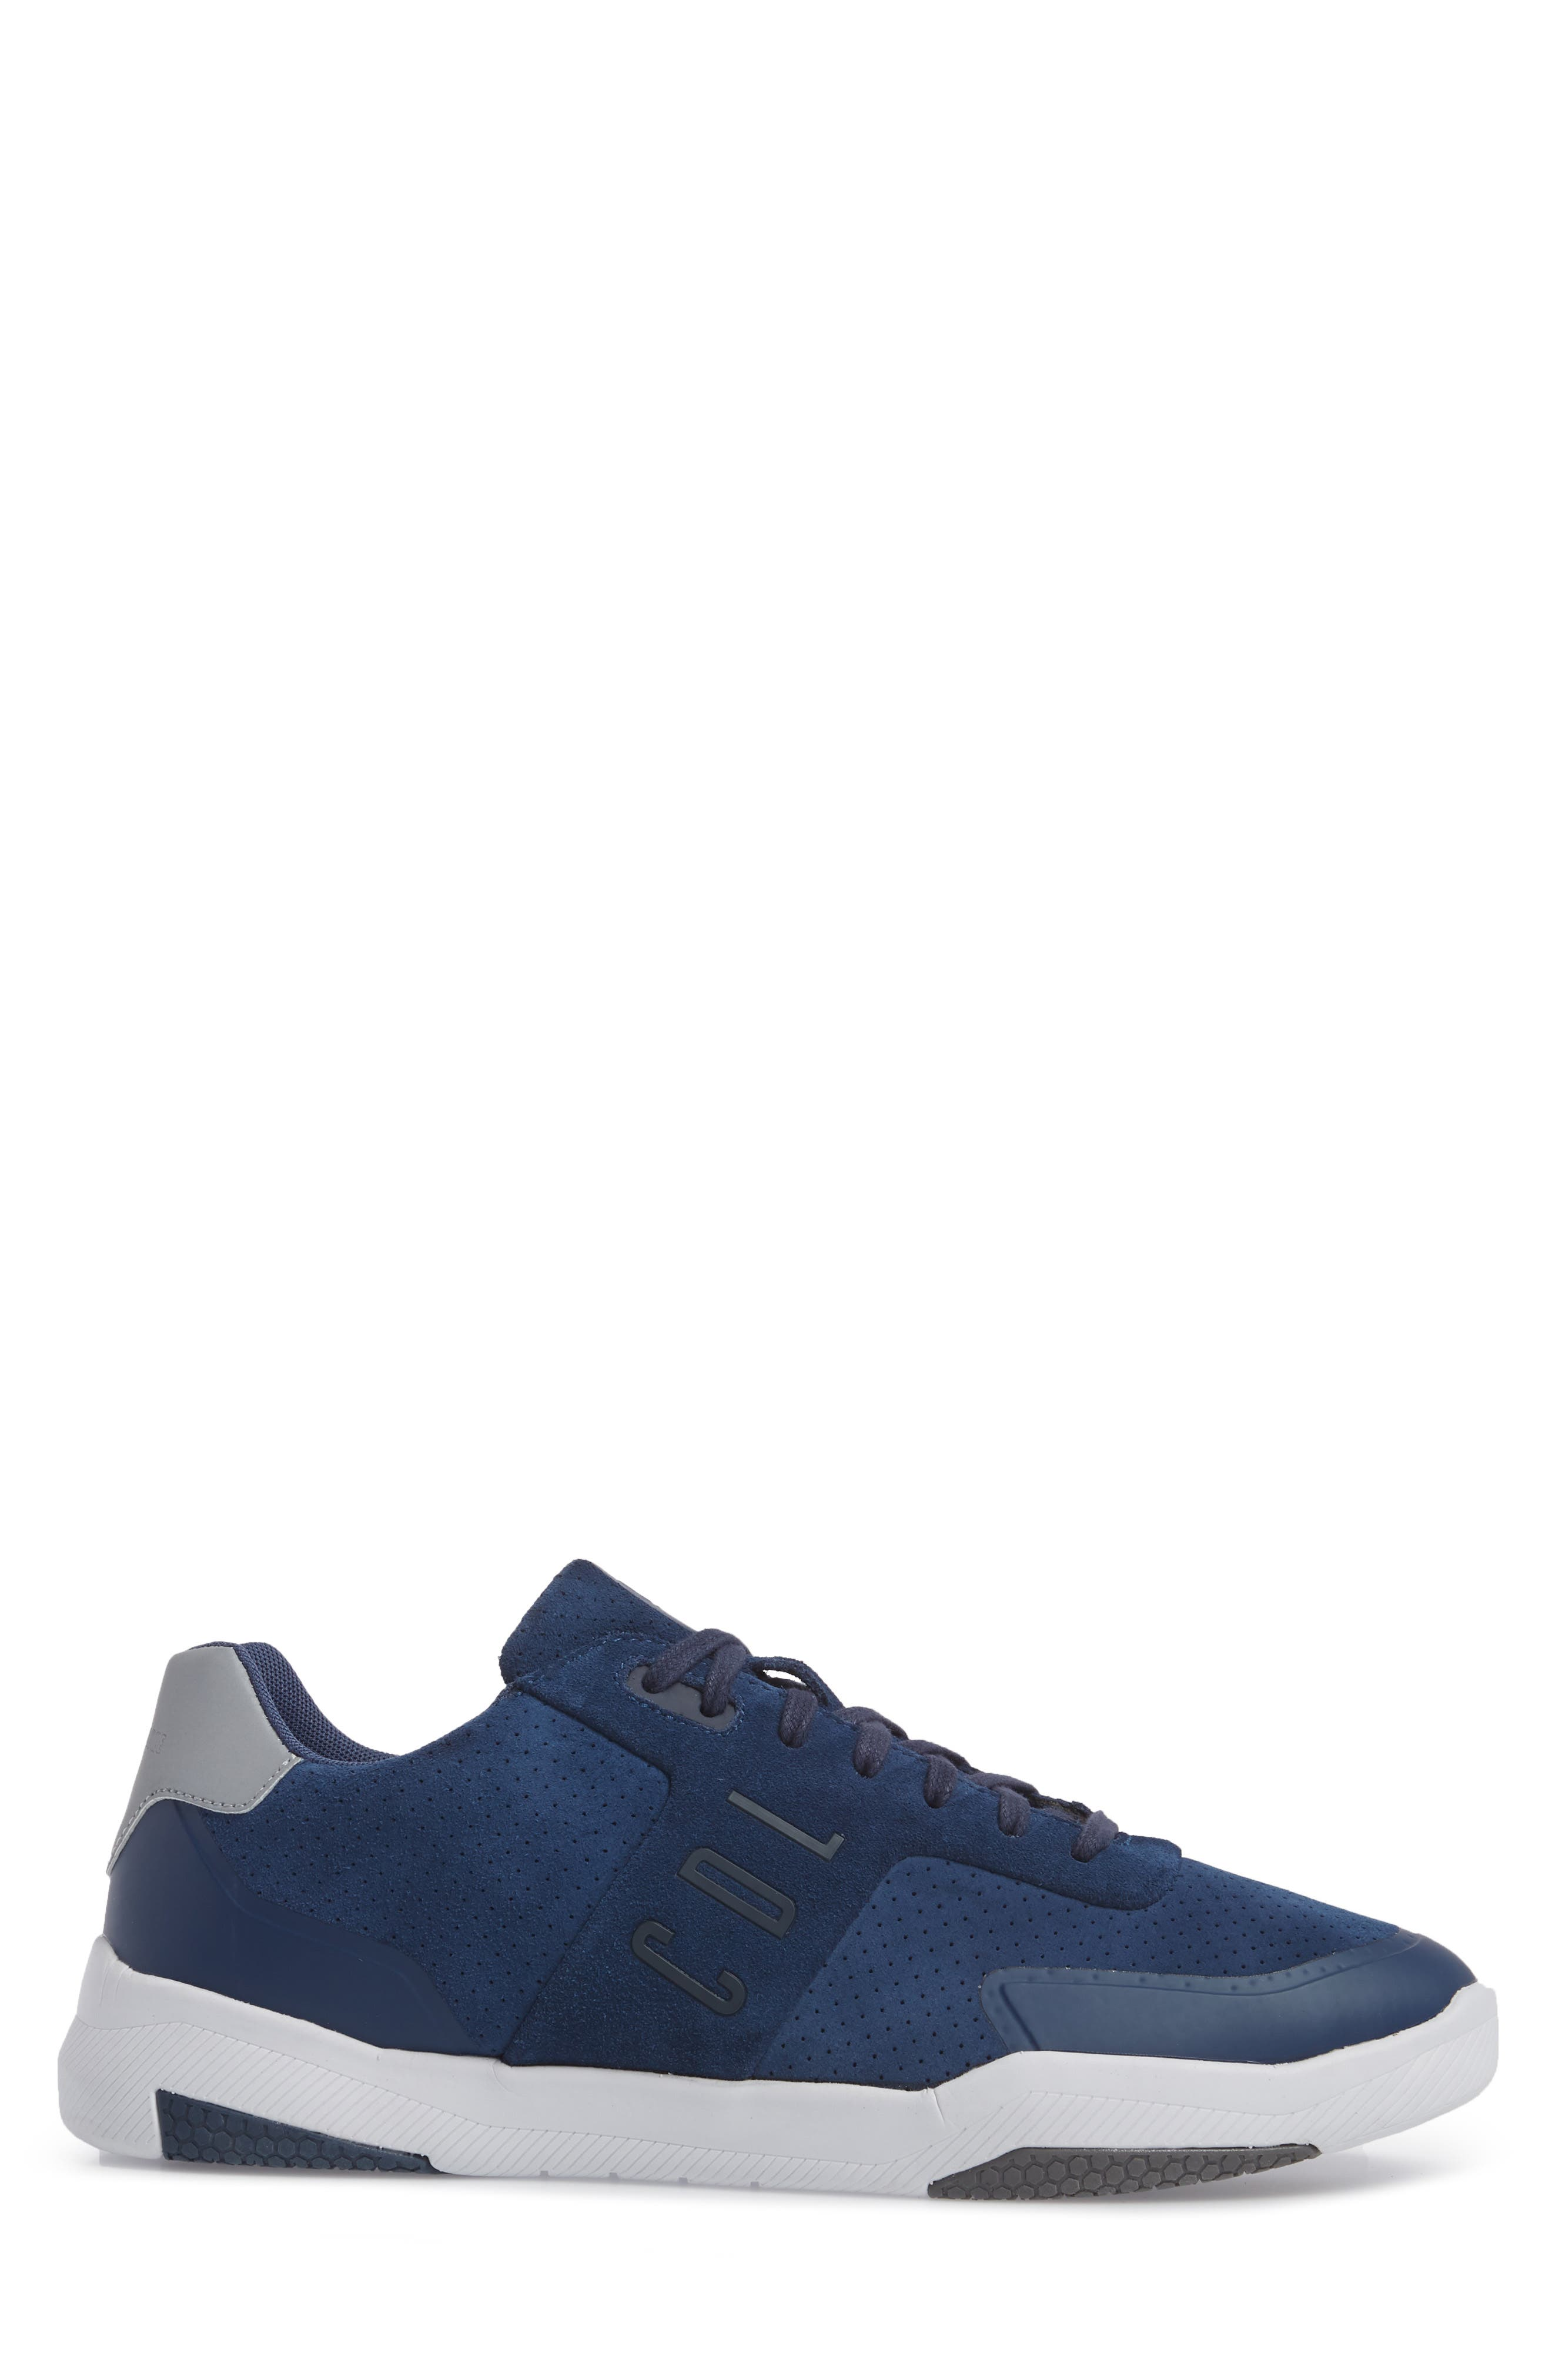 Shima Low Top Sneaker,                             Alternate thumbnail 3, color,                             NAVY SUEDE